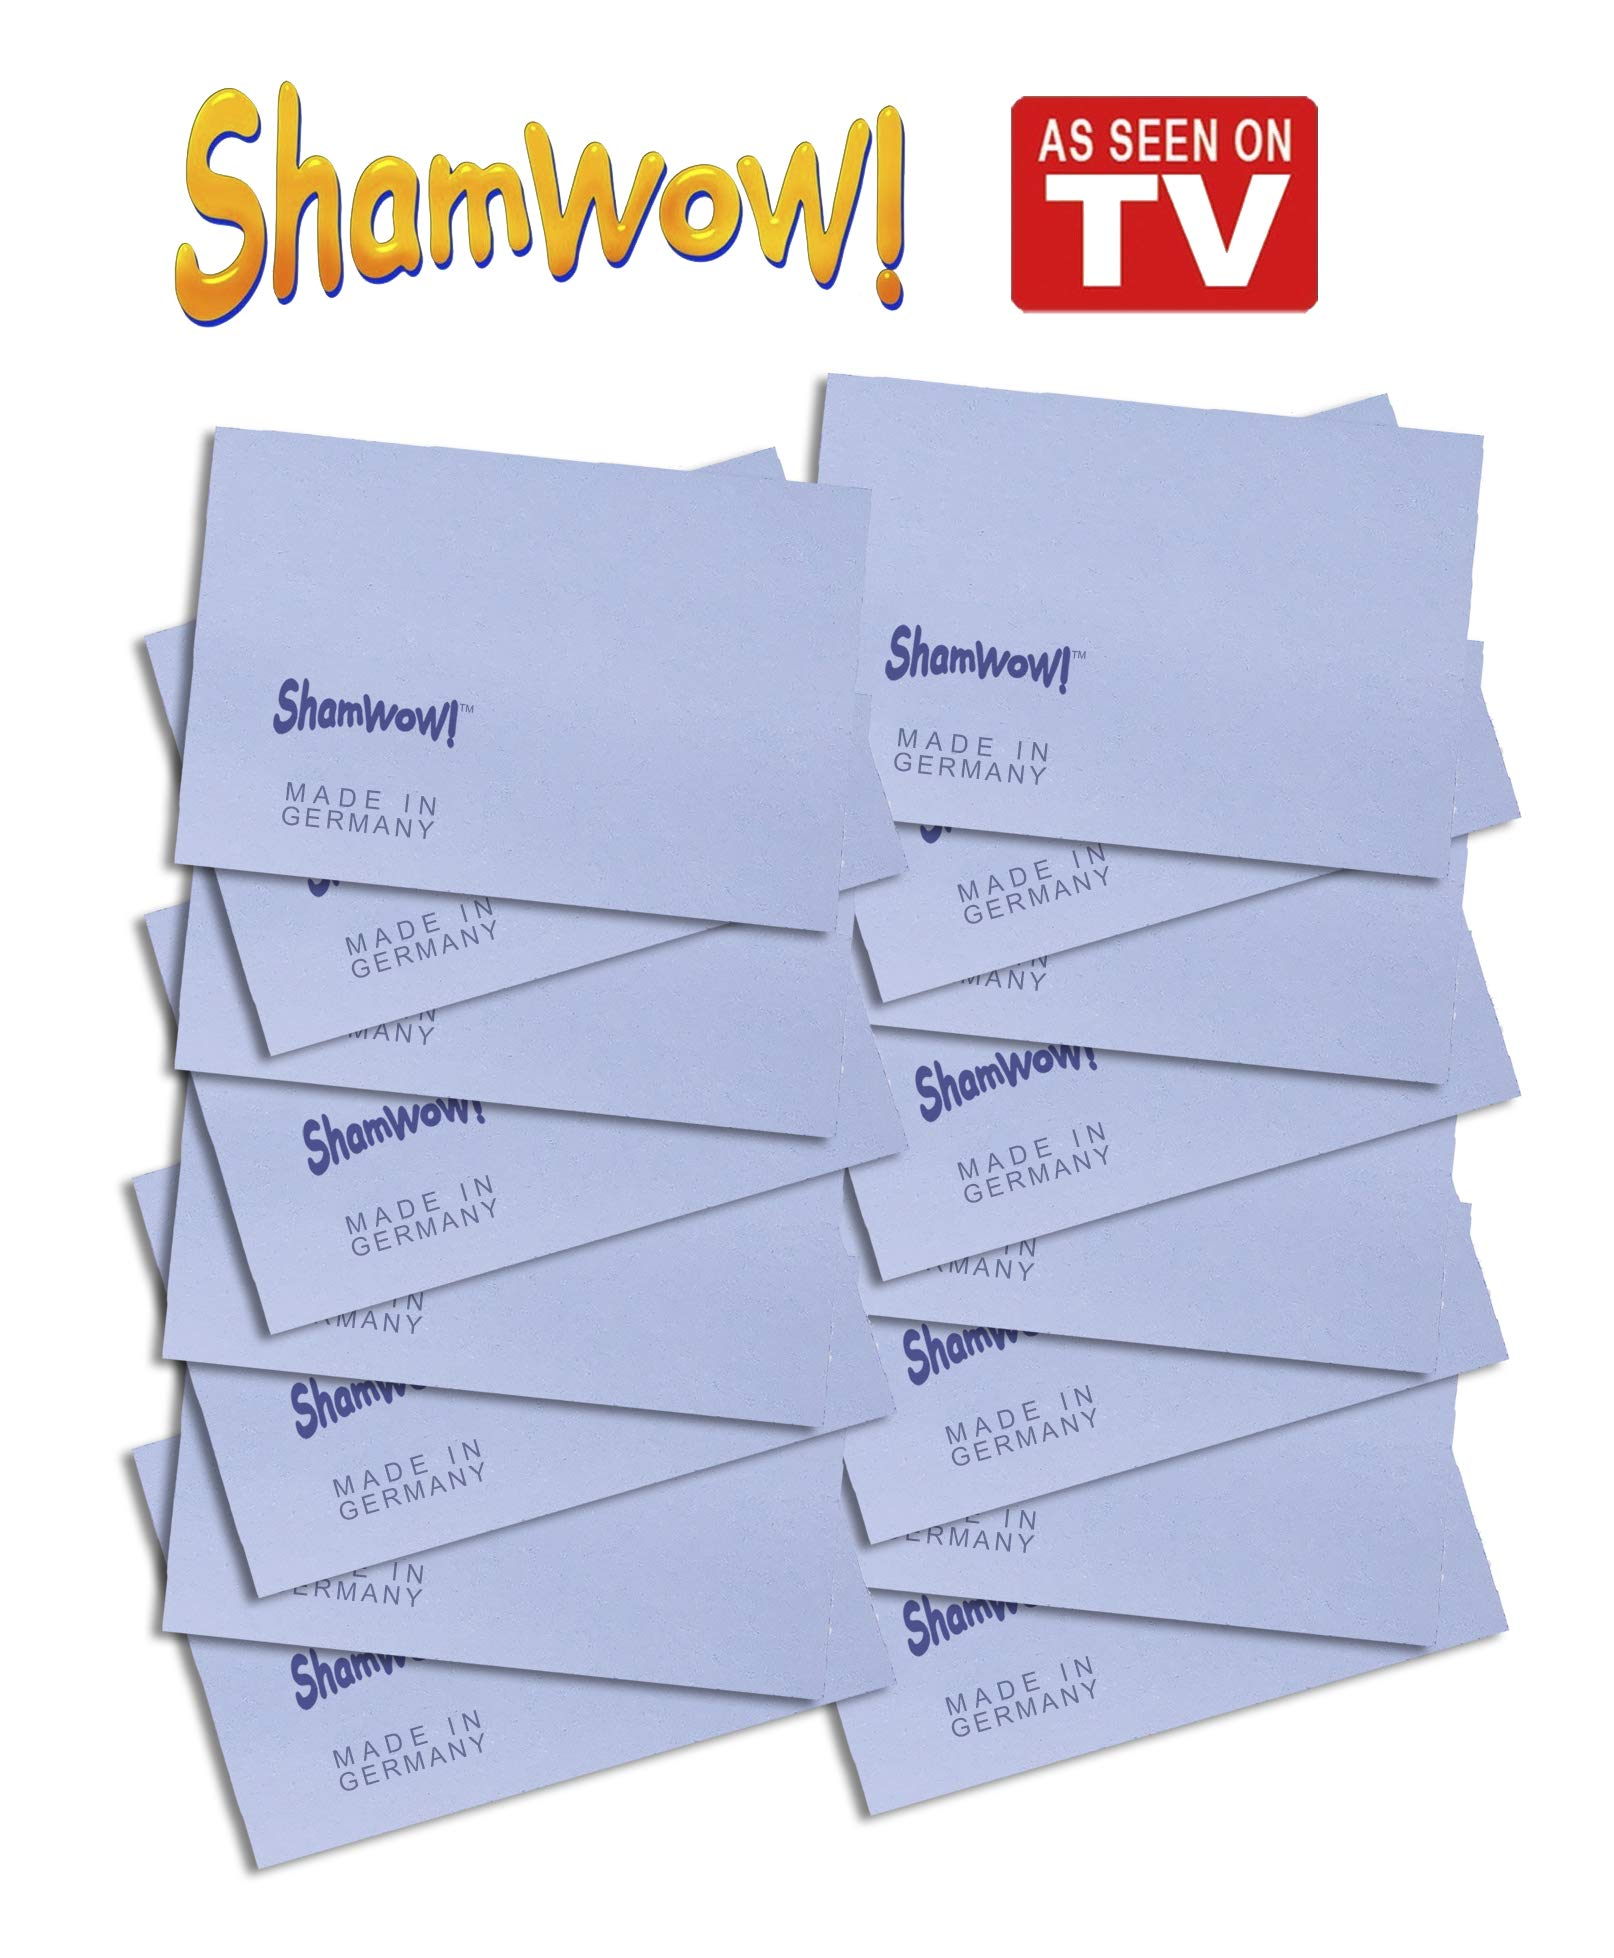 The Original Shamwow Mini - Super Absorbent Multi-Purpose Cleaning Shammy (Chamois) Towel Cloth, Machine Washable, Will Not Scratch, Blue (16 Pack)